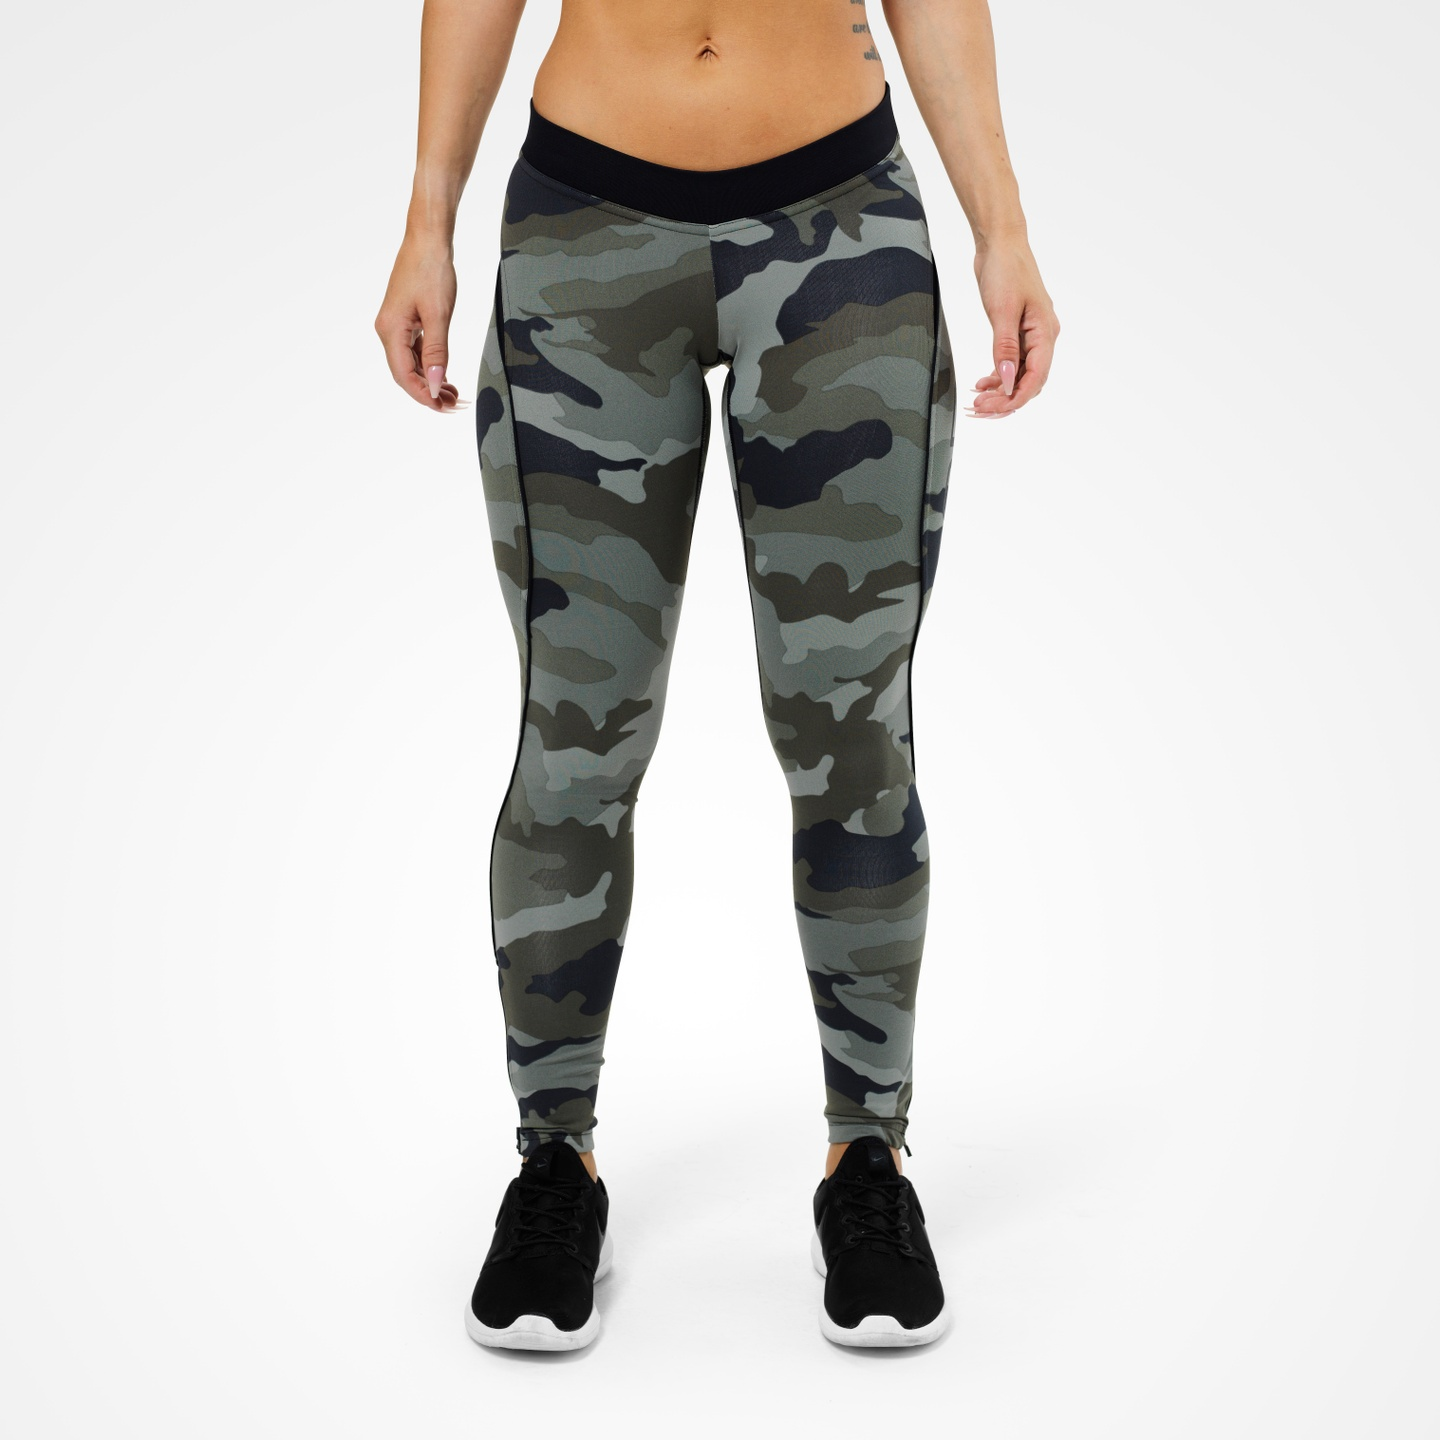 a6c509513a76b ... A product image of Camo Long Tights, Green Camoprint